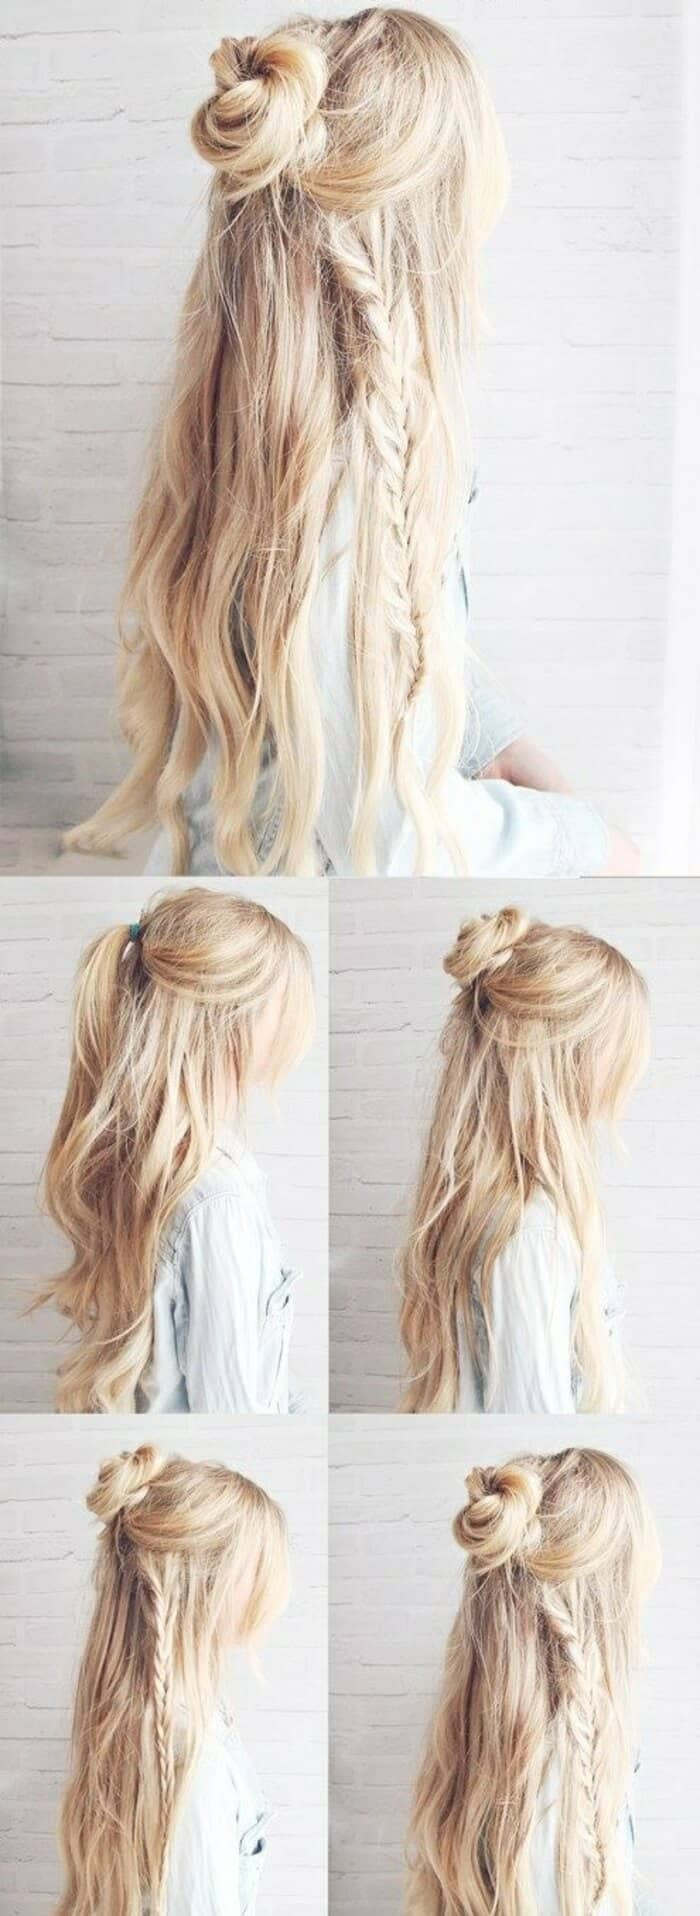 Best Adorable Bun Hairstyles 2019-Inspirations That 18